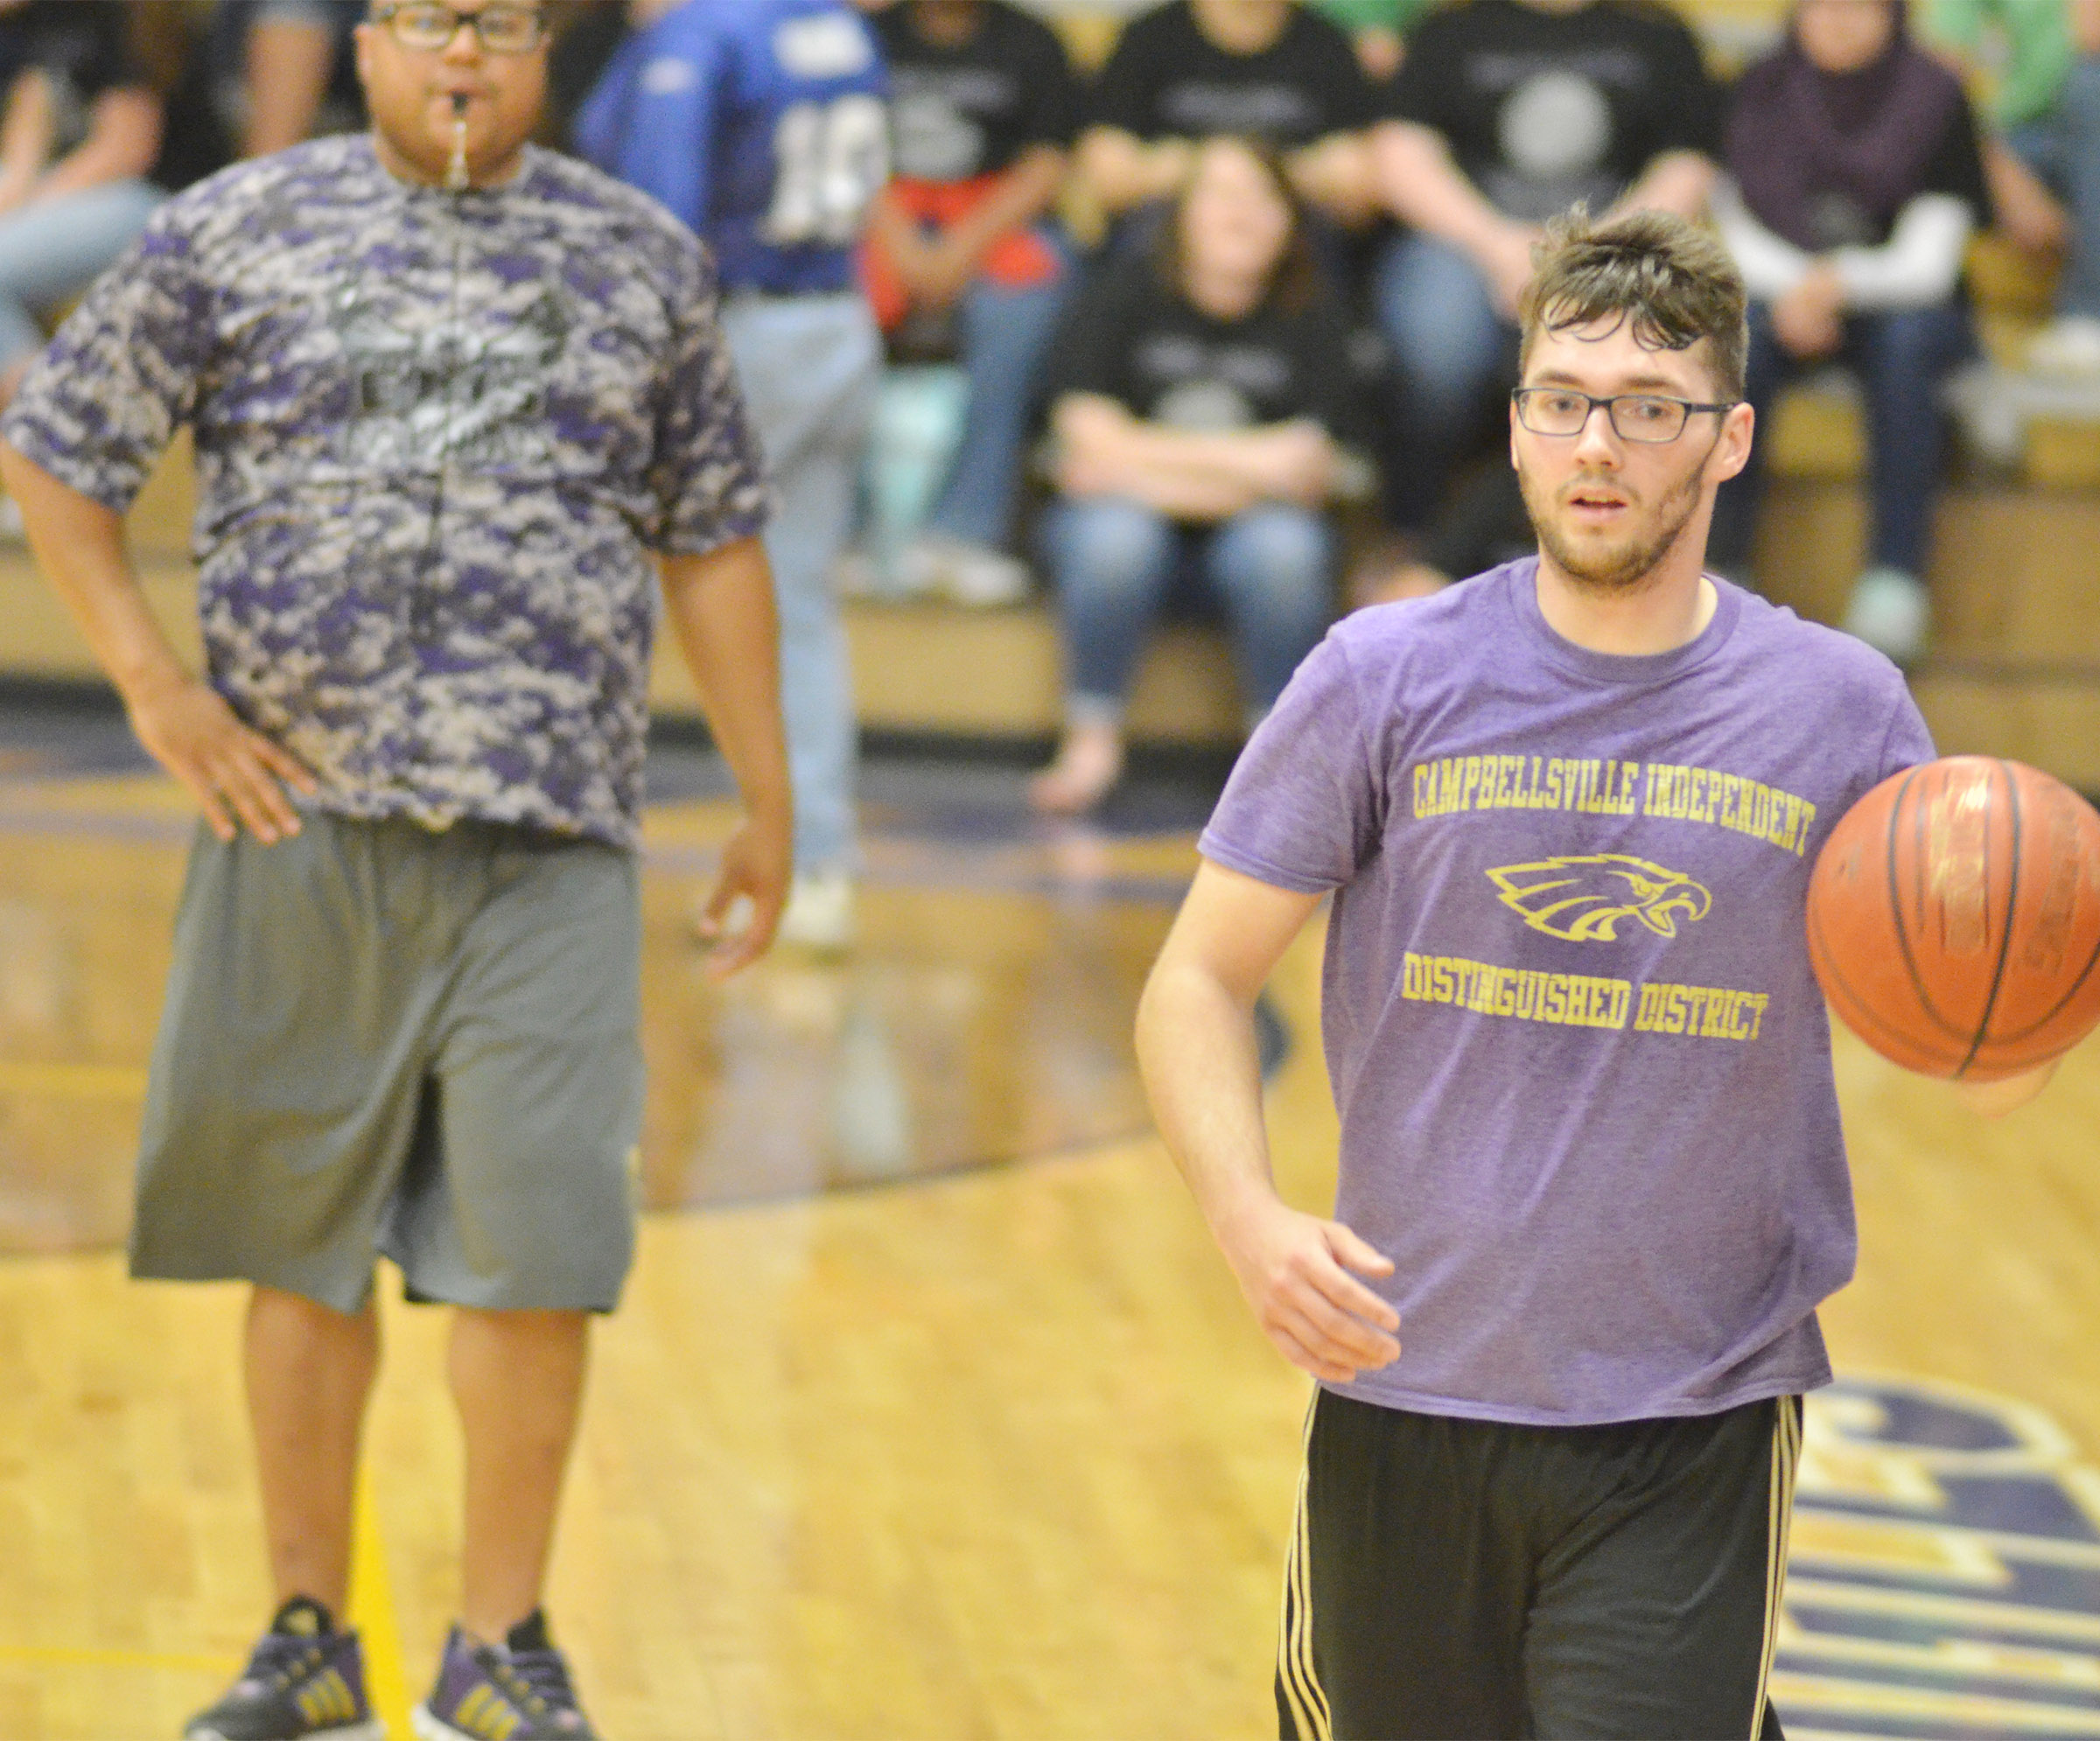 Campbellsville High School instructional assistant Cody Wills dribbles to the basket.